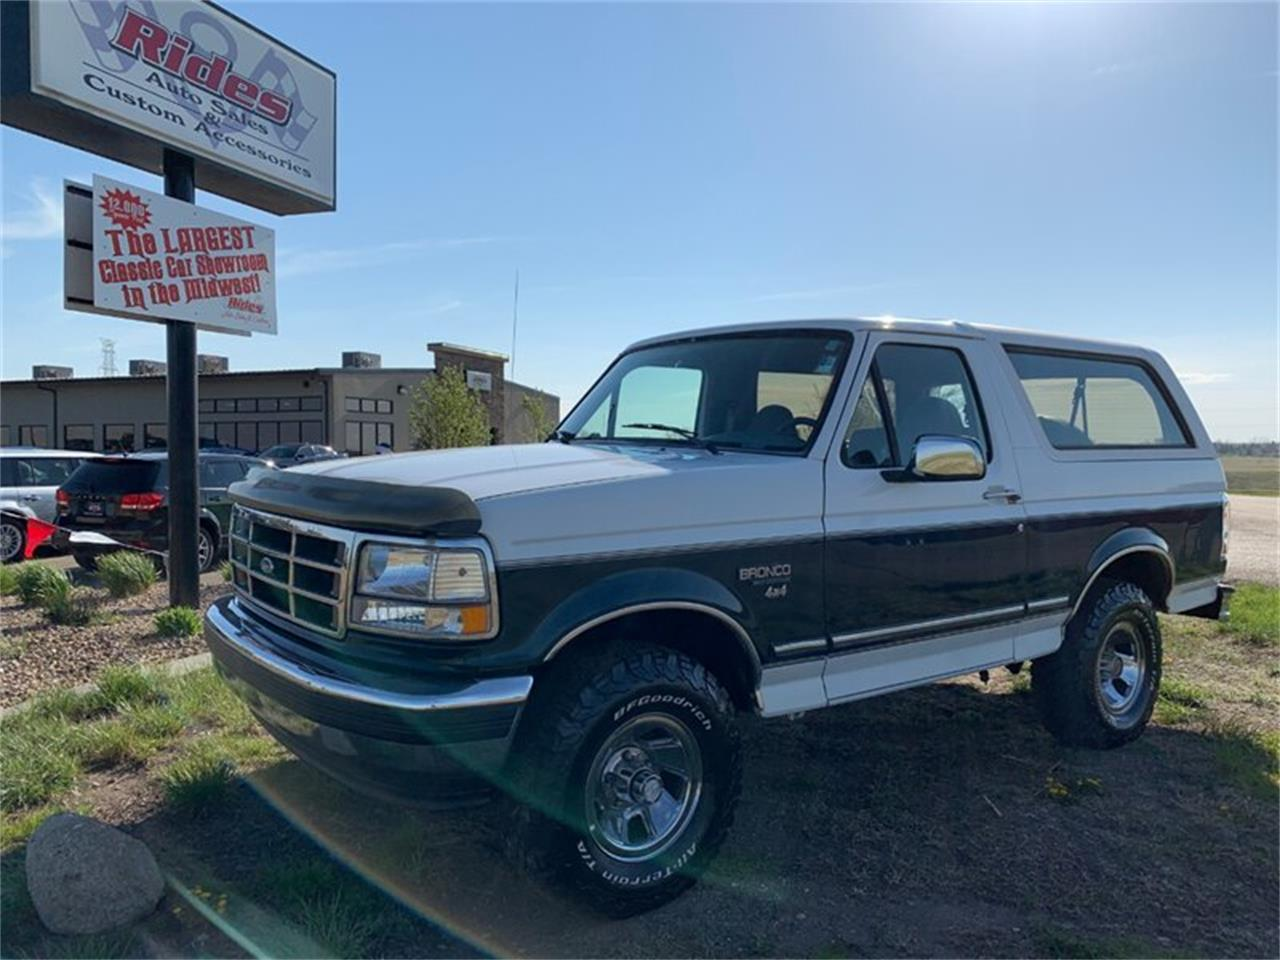 Large Picture of '94 Ford Bronco located in Bismarck North Dakota - $15,890.00 Offered by Rides Auto Sales - Q4UY